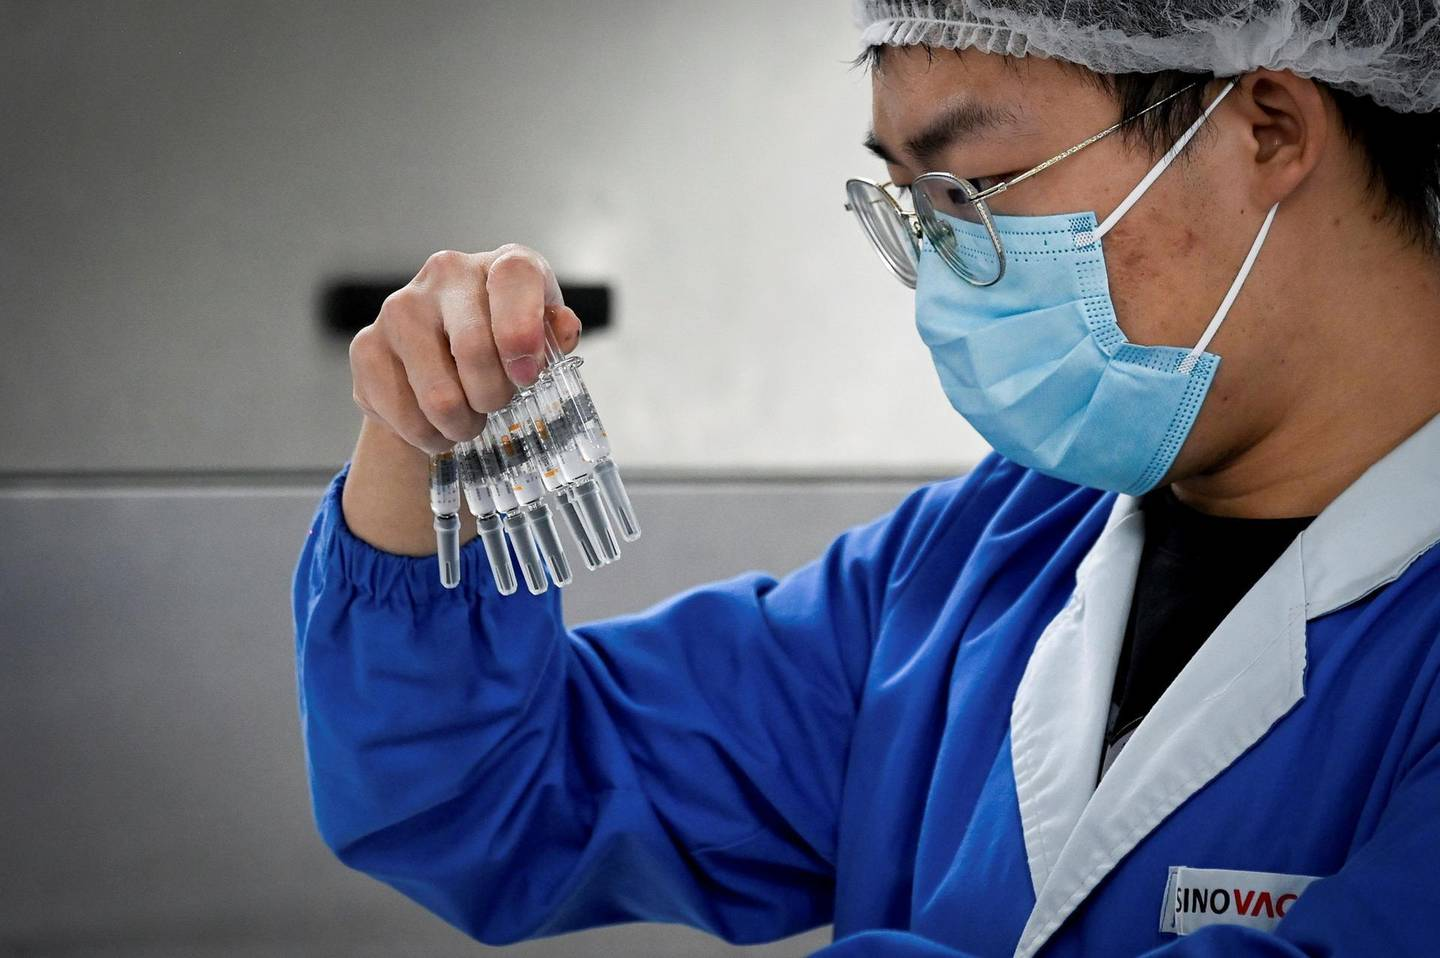 (FILES) This file photo taken on September 24, 2020 shows a staff member checking vaccines during a media tour of a new factory built to produce a COVID-19 coronavirus vaccine at Sinovac, one of 11 Chinese companies approved to carry out clinical trials of potential coronavirus vaccines, in Beijing.  China has launched a global charm offensive promising poorer nations priority access to its coronavirus vaccines in a bid to repair an international image tarnished by the pandemic. -   / AFP / WANG Zhao